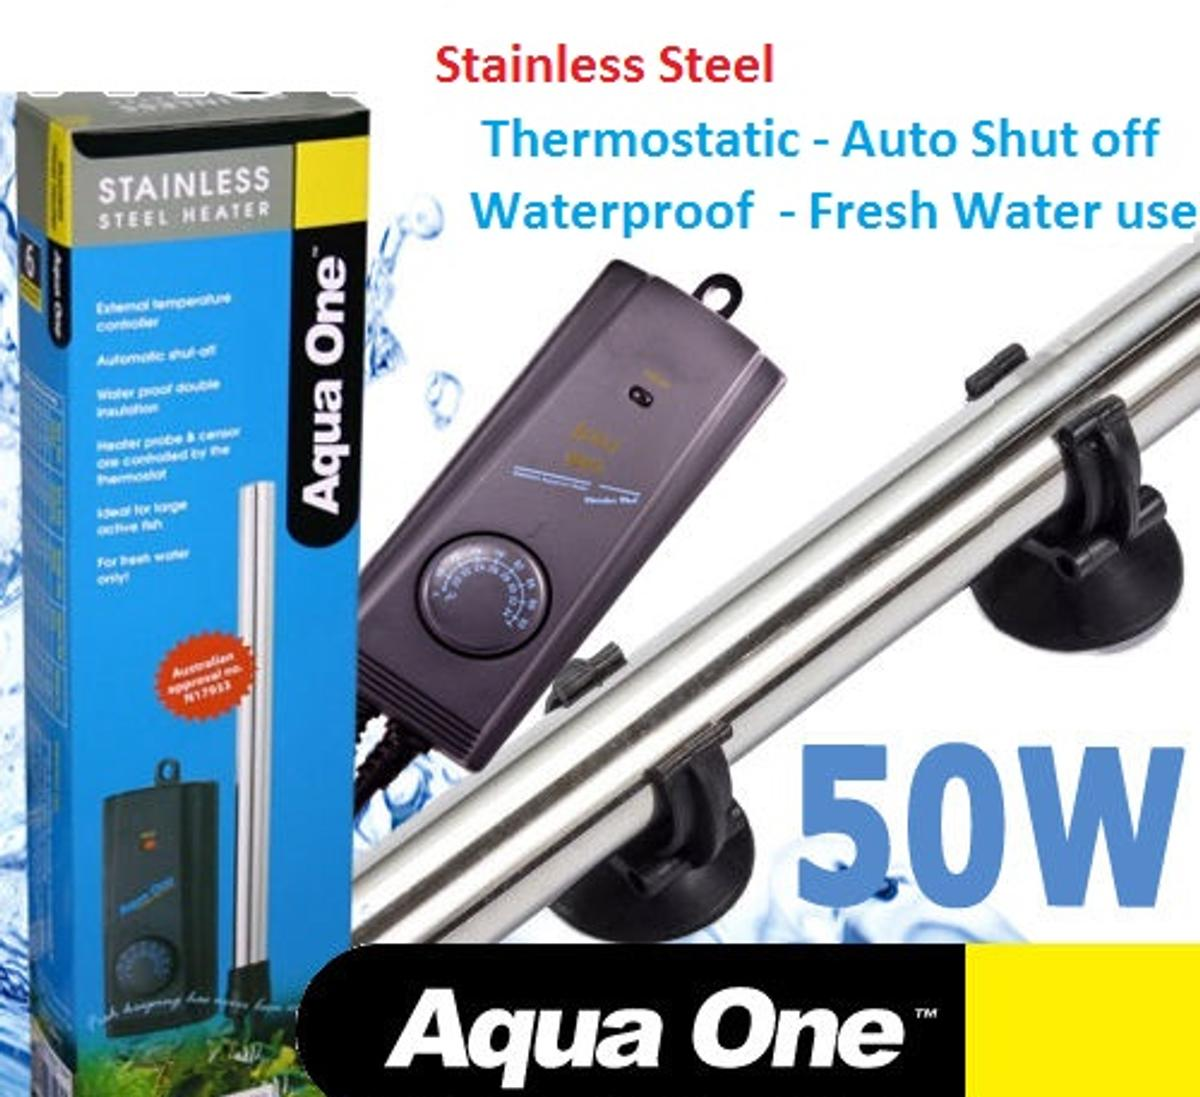 Aqua One Submersible Aquarium Heater,S/Steel in BD9 Bradford